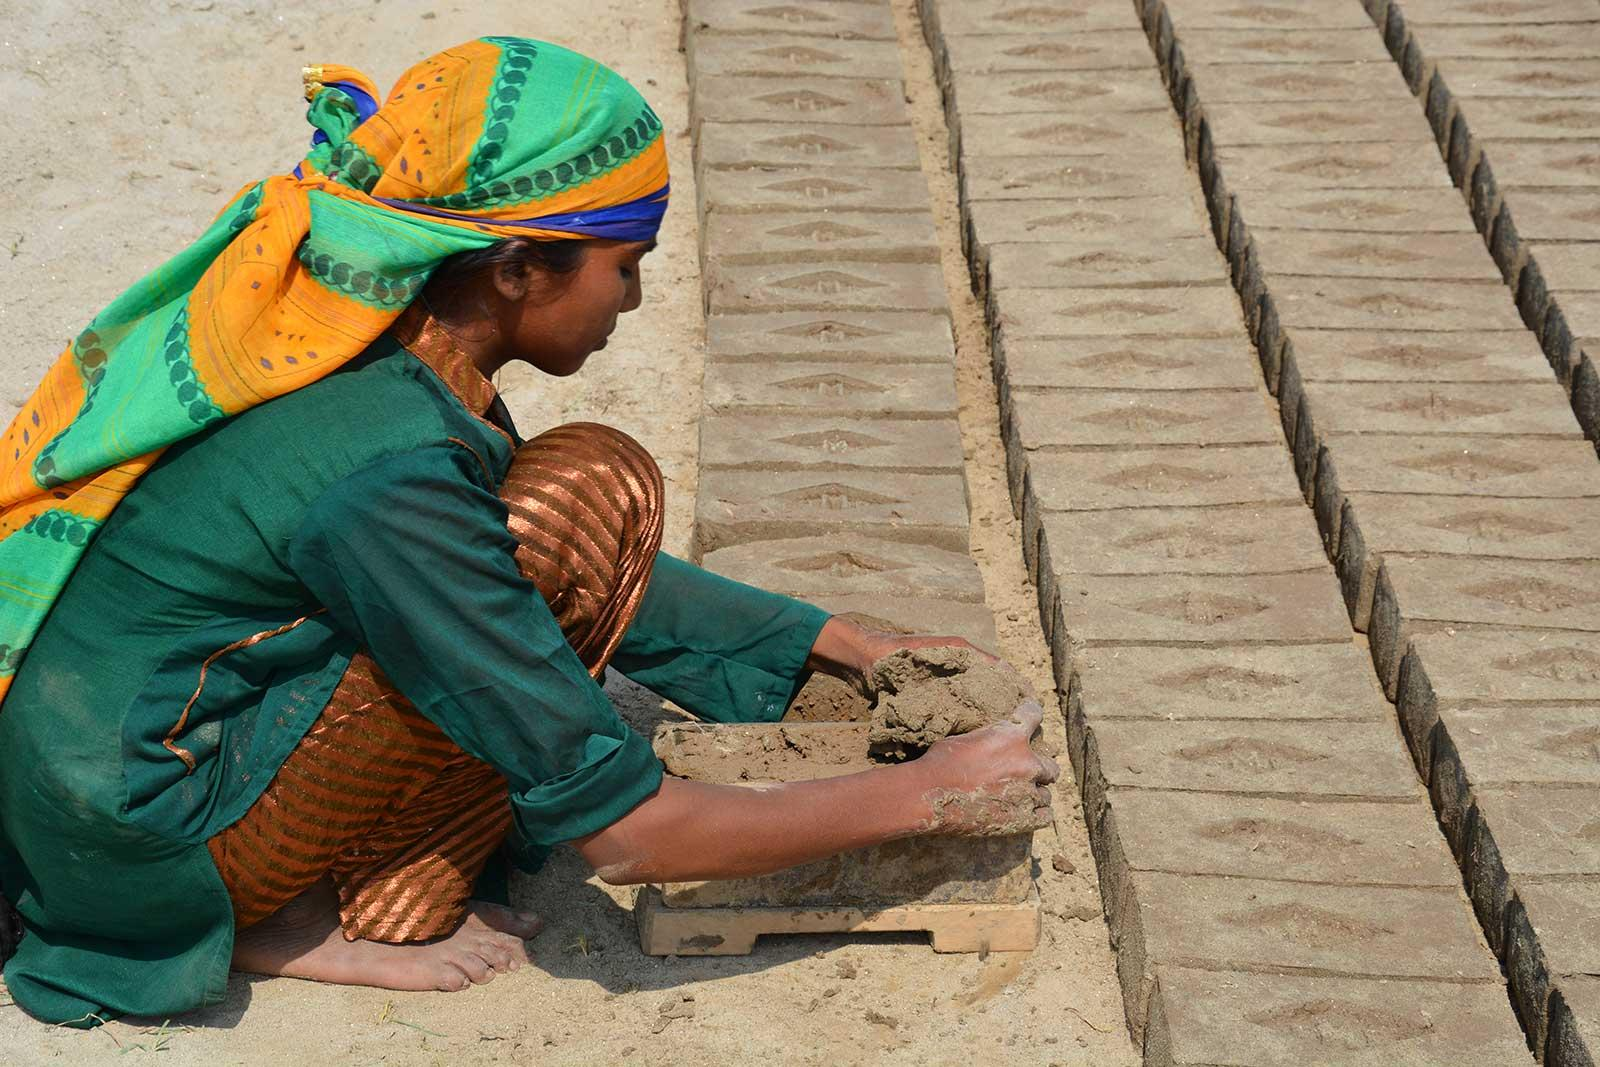 Nisha making bricks under bright sunlight